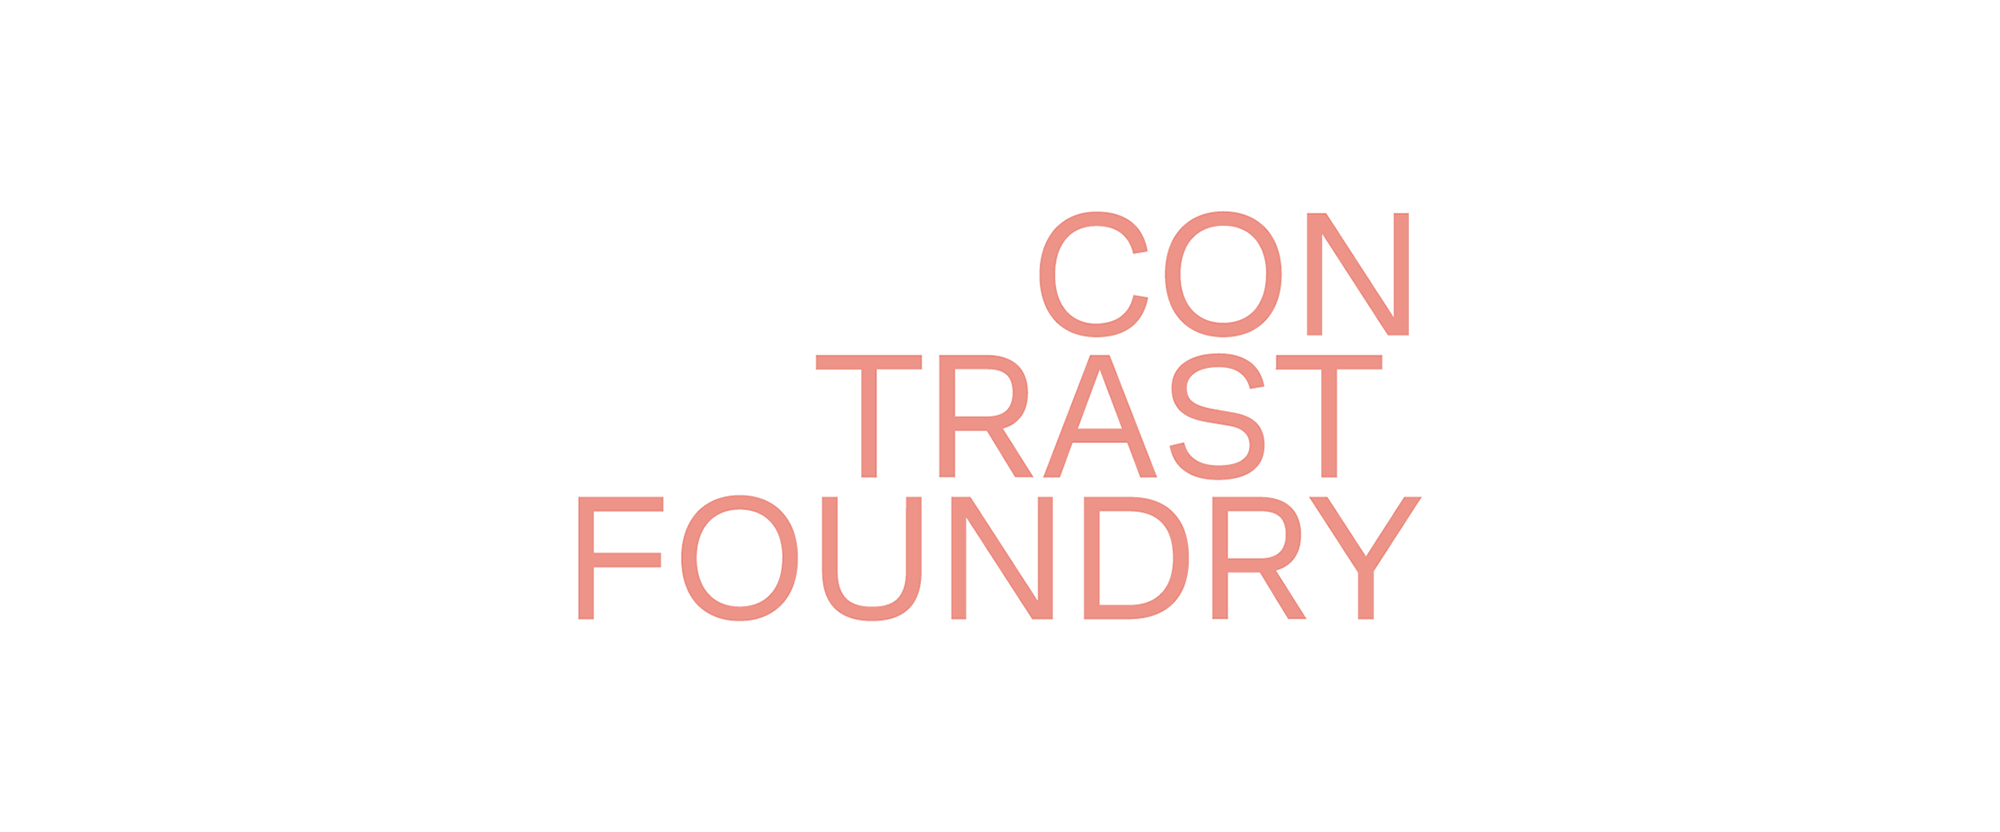 New Logo and Identity for Contrast Foundry by White Russian